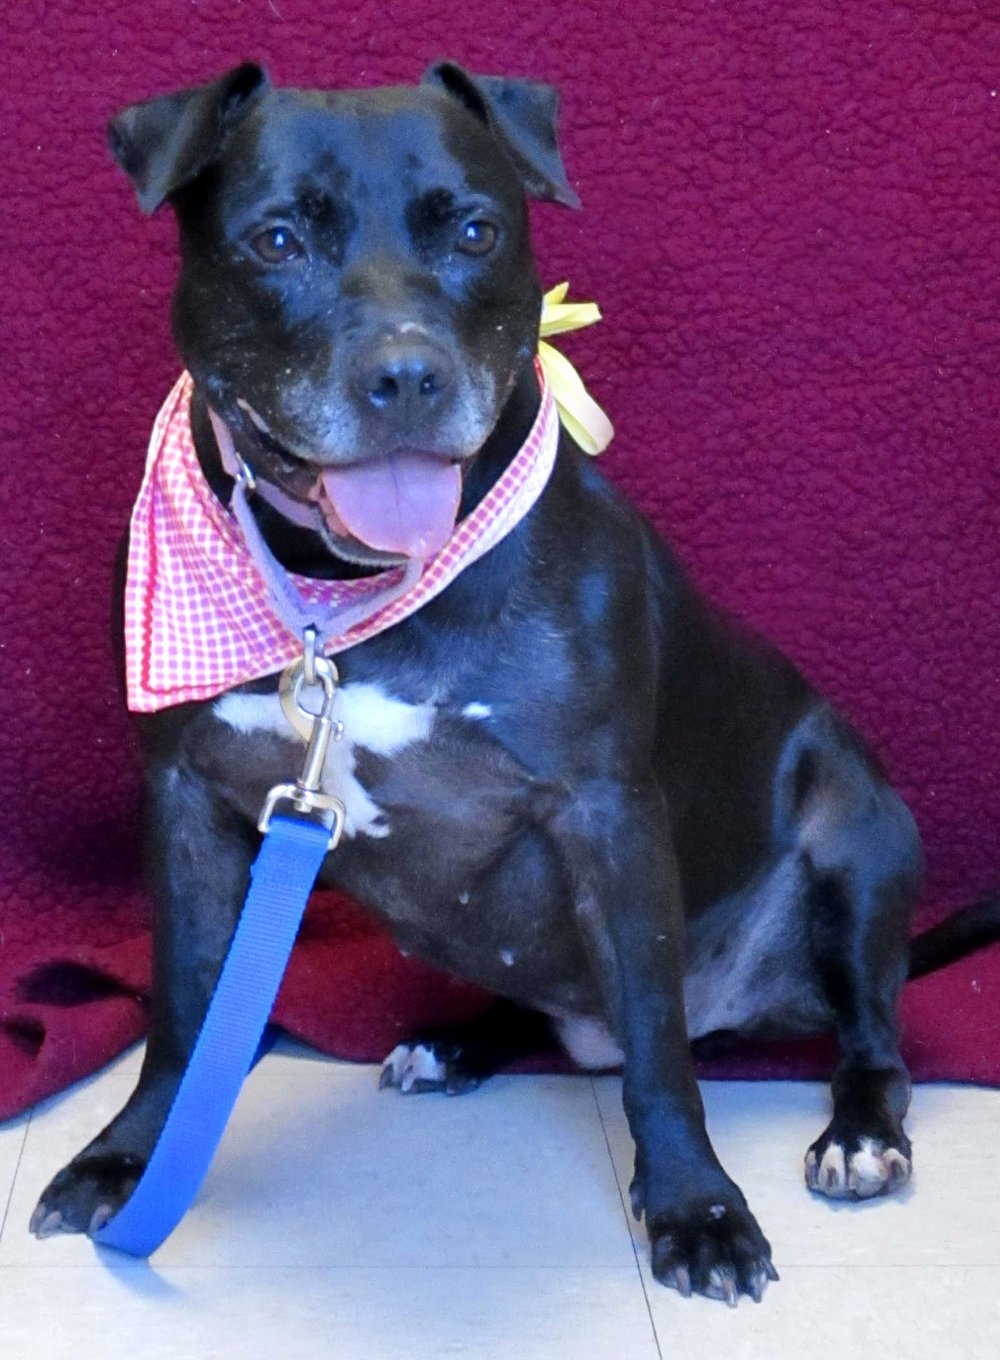 Phoebe is an 8-year-old dog from Florida. HAWS is recommending children 6 and older due to her age and sensitivities to muzzle touch. She is very sweet and settles down nicely after play with toys. If you are looking for an active dog that can be a couch potato, too, come and meet her!